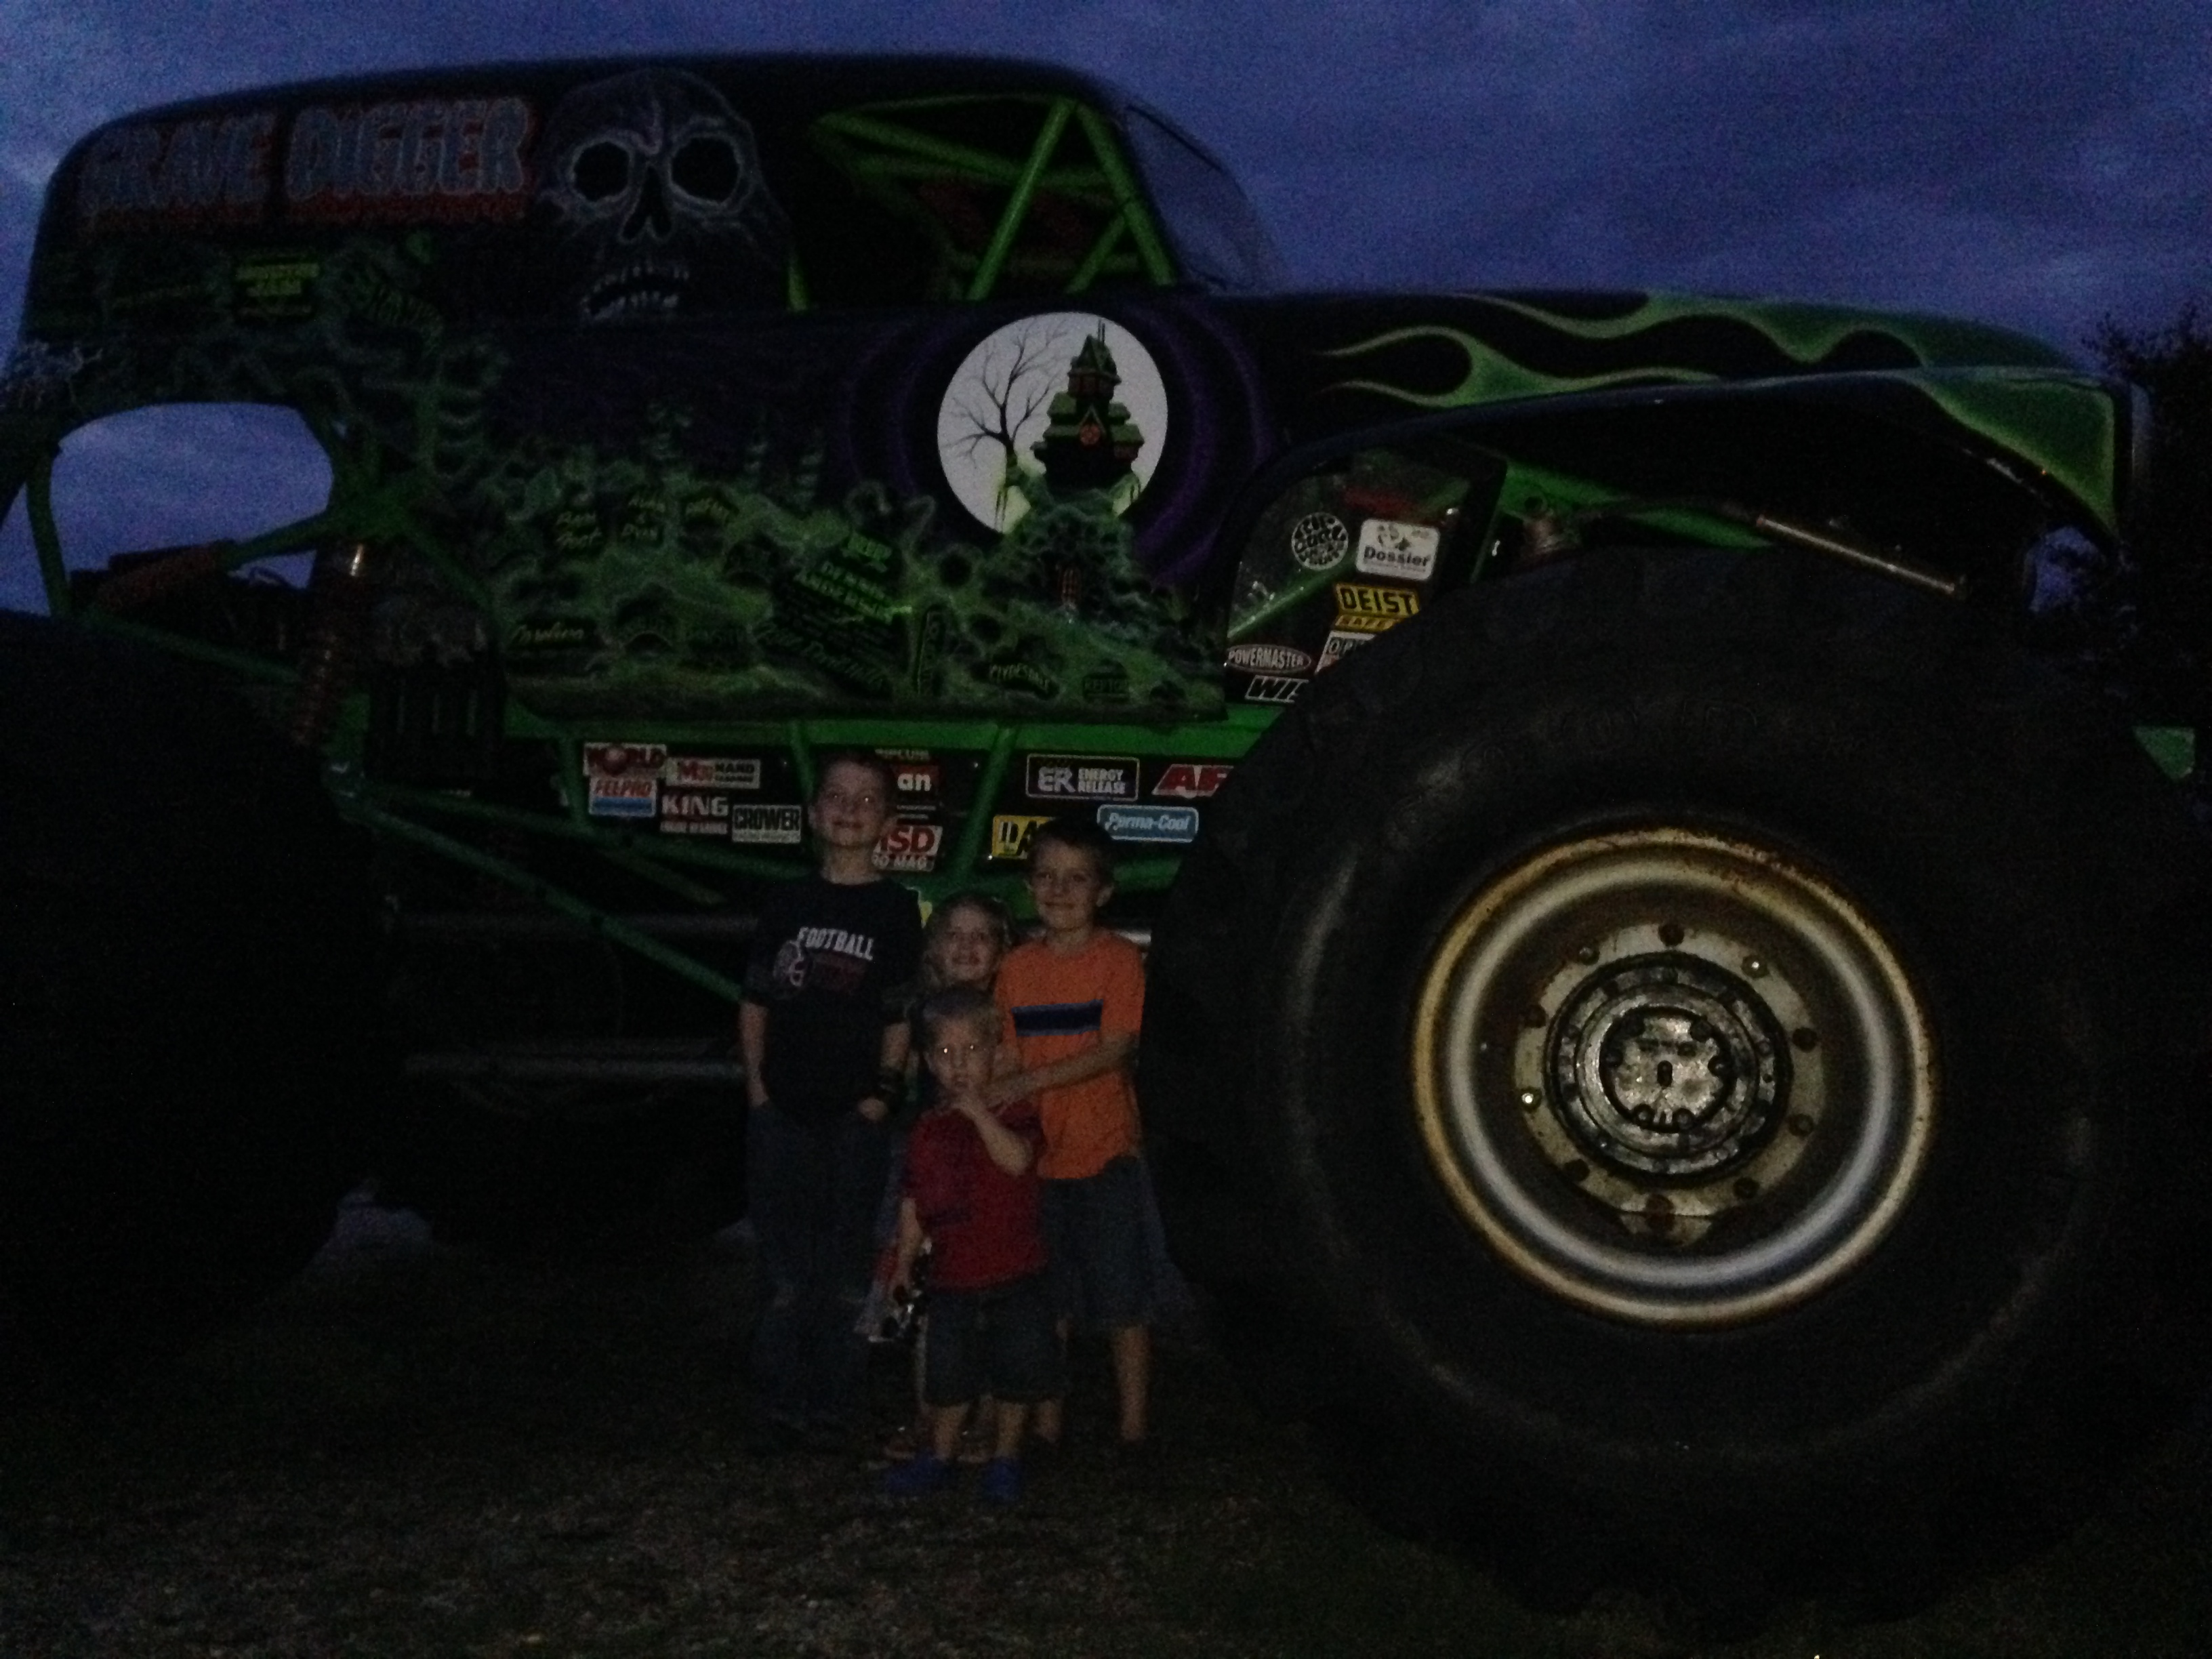 The kids in front of Grave Digger